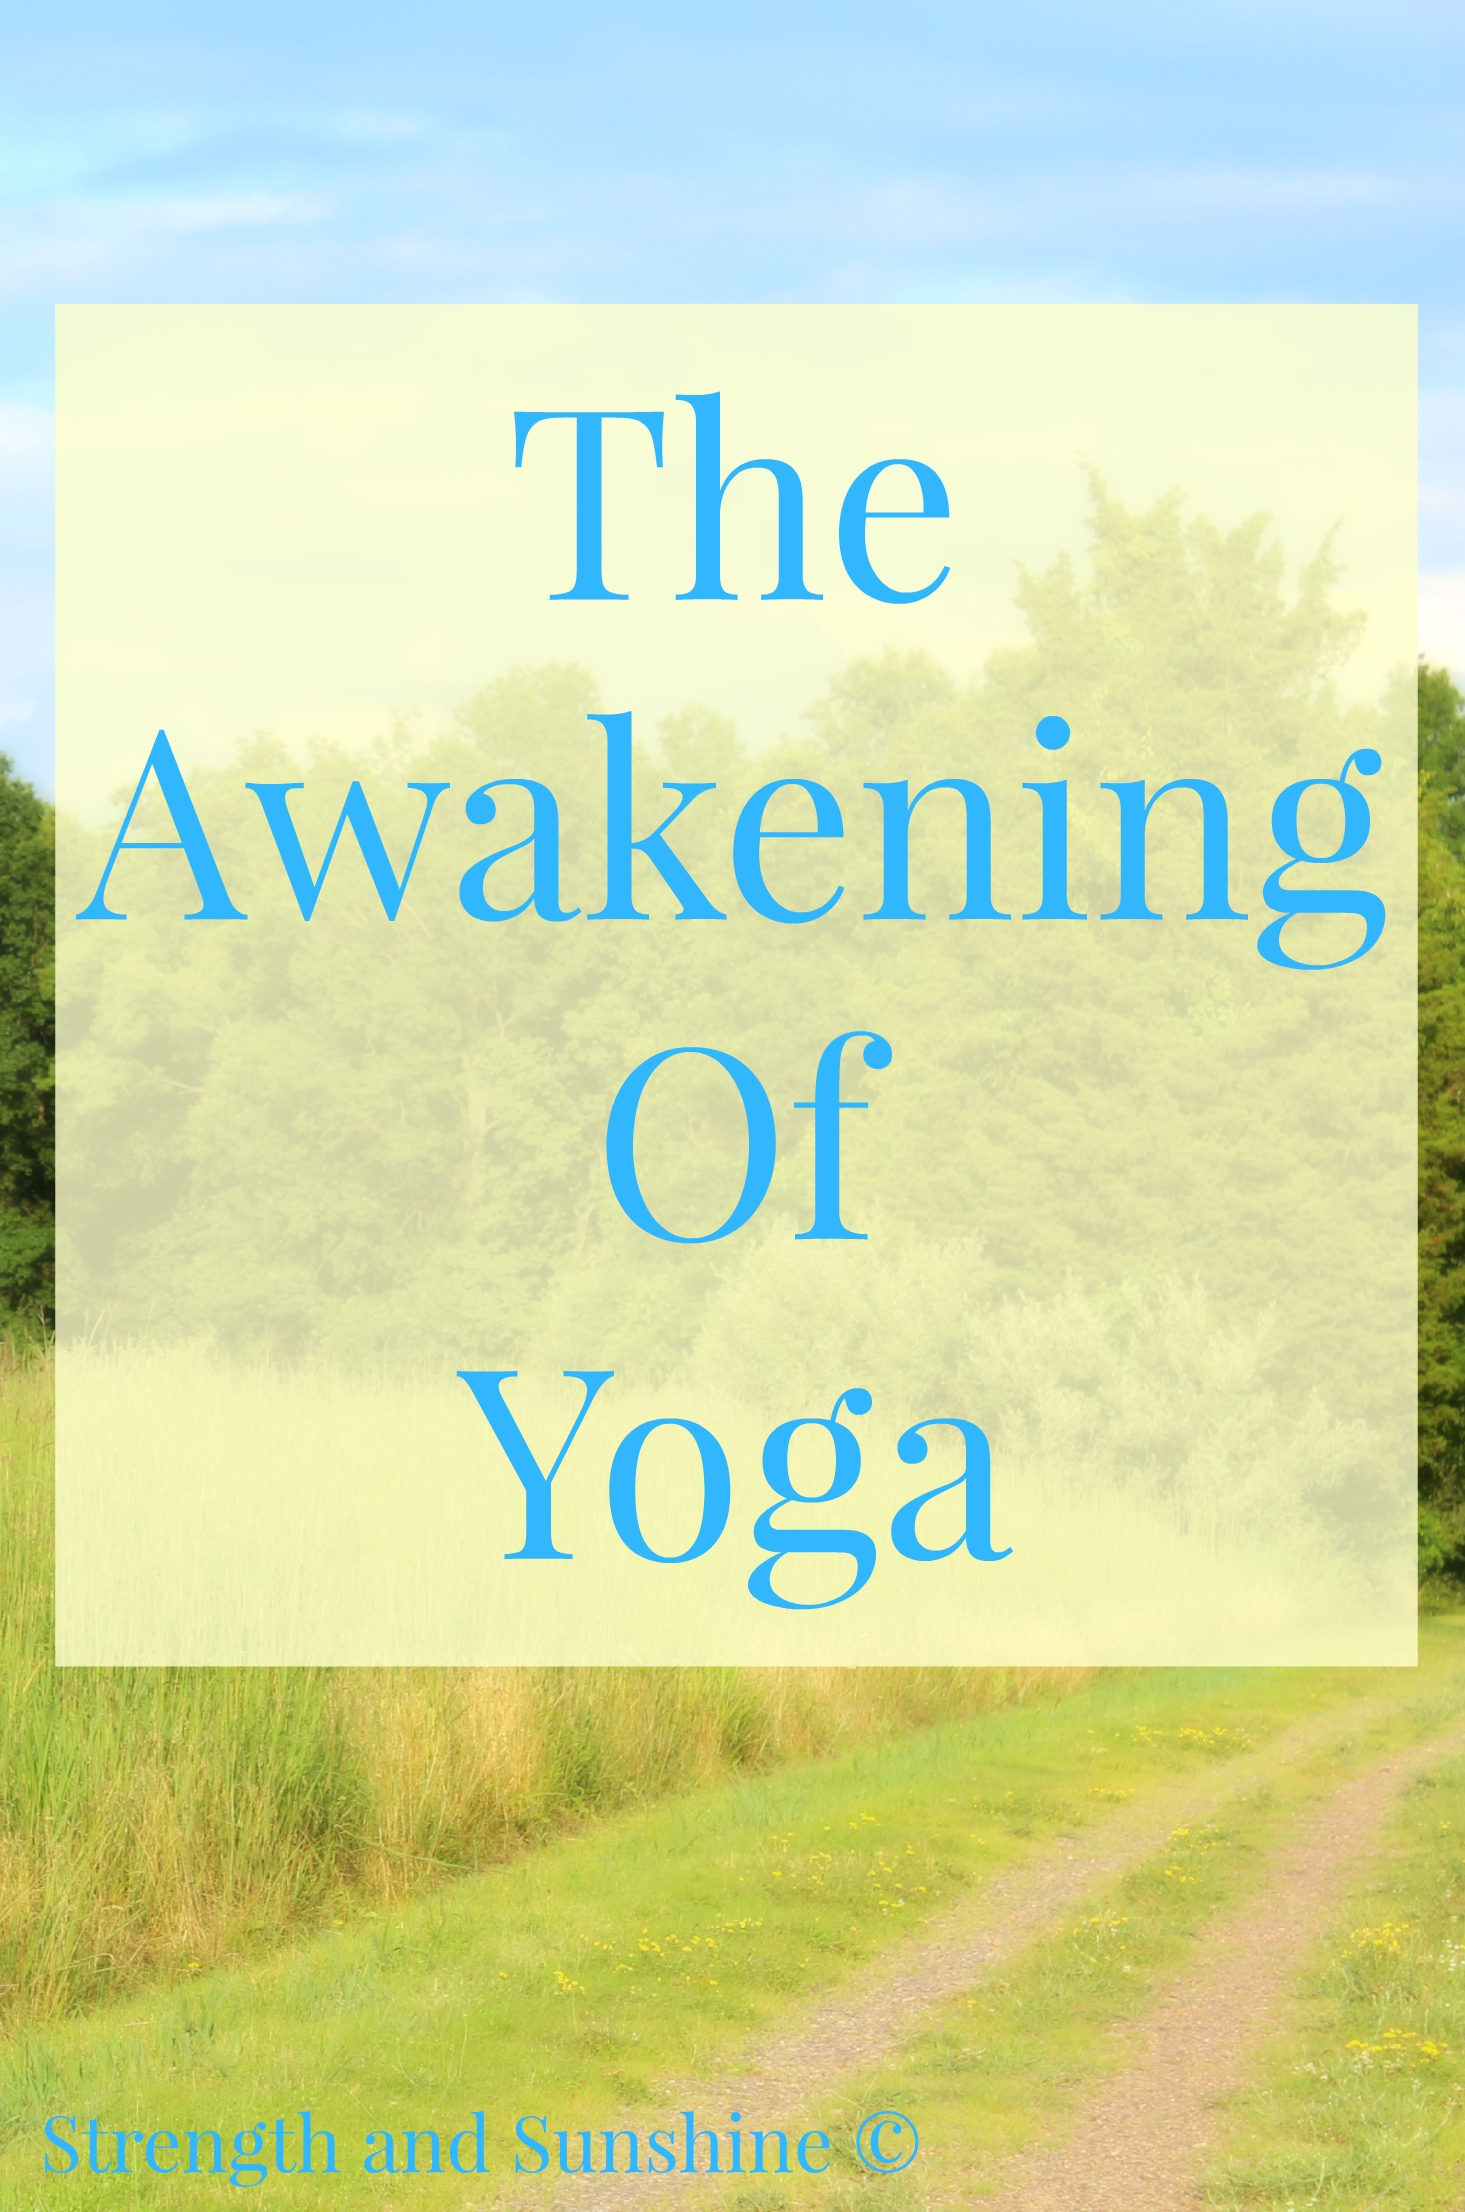 The Awakening Of Yoga | Strength and Sunshine @RebeccaGF666